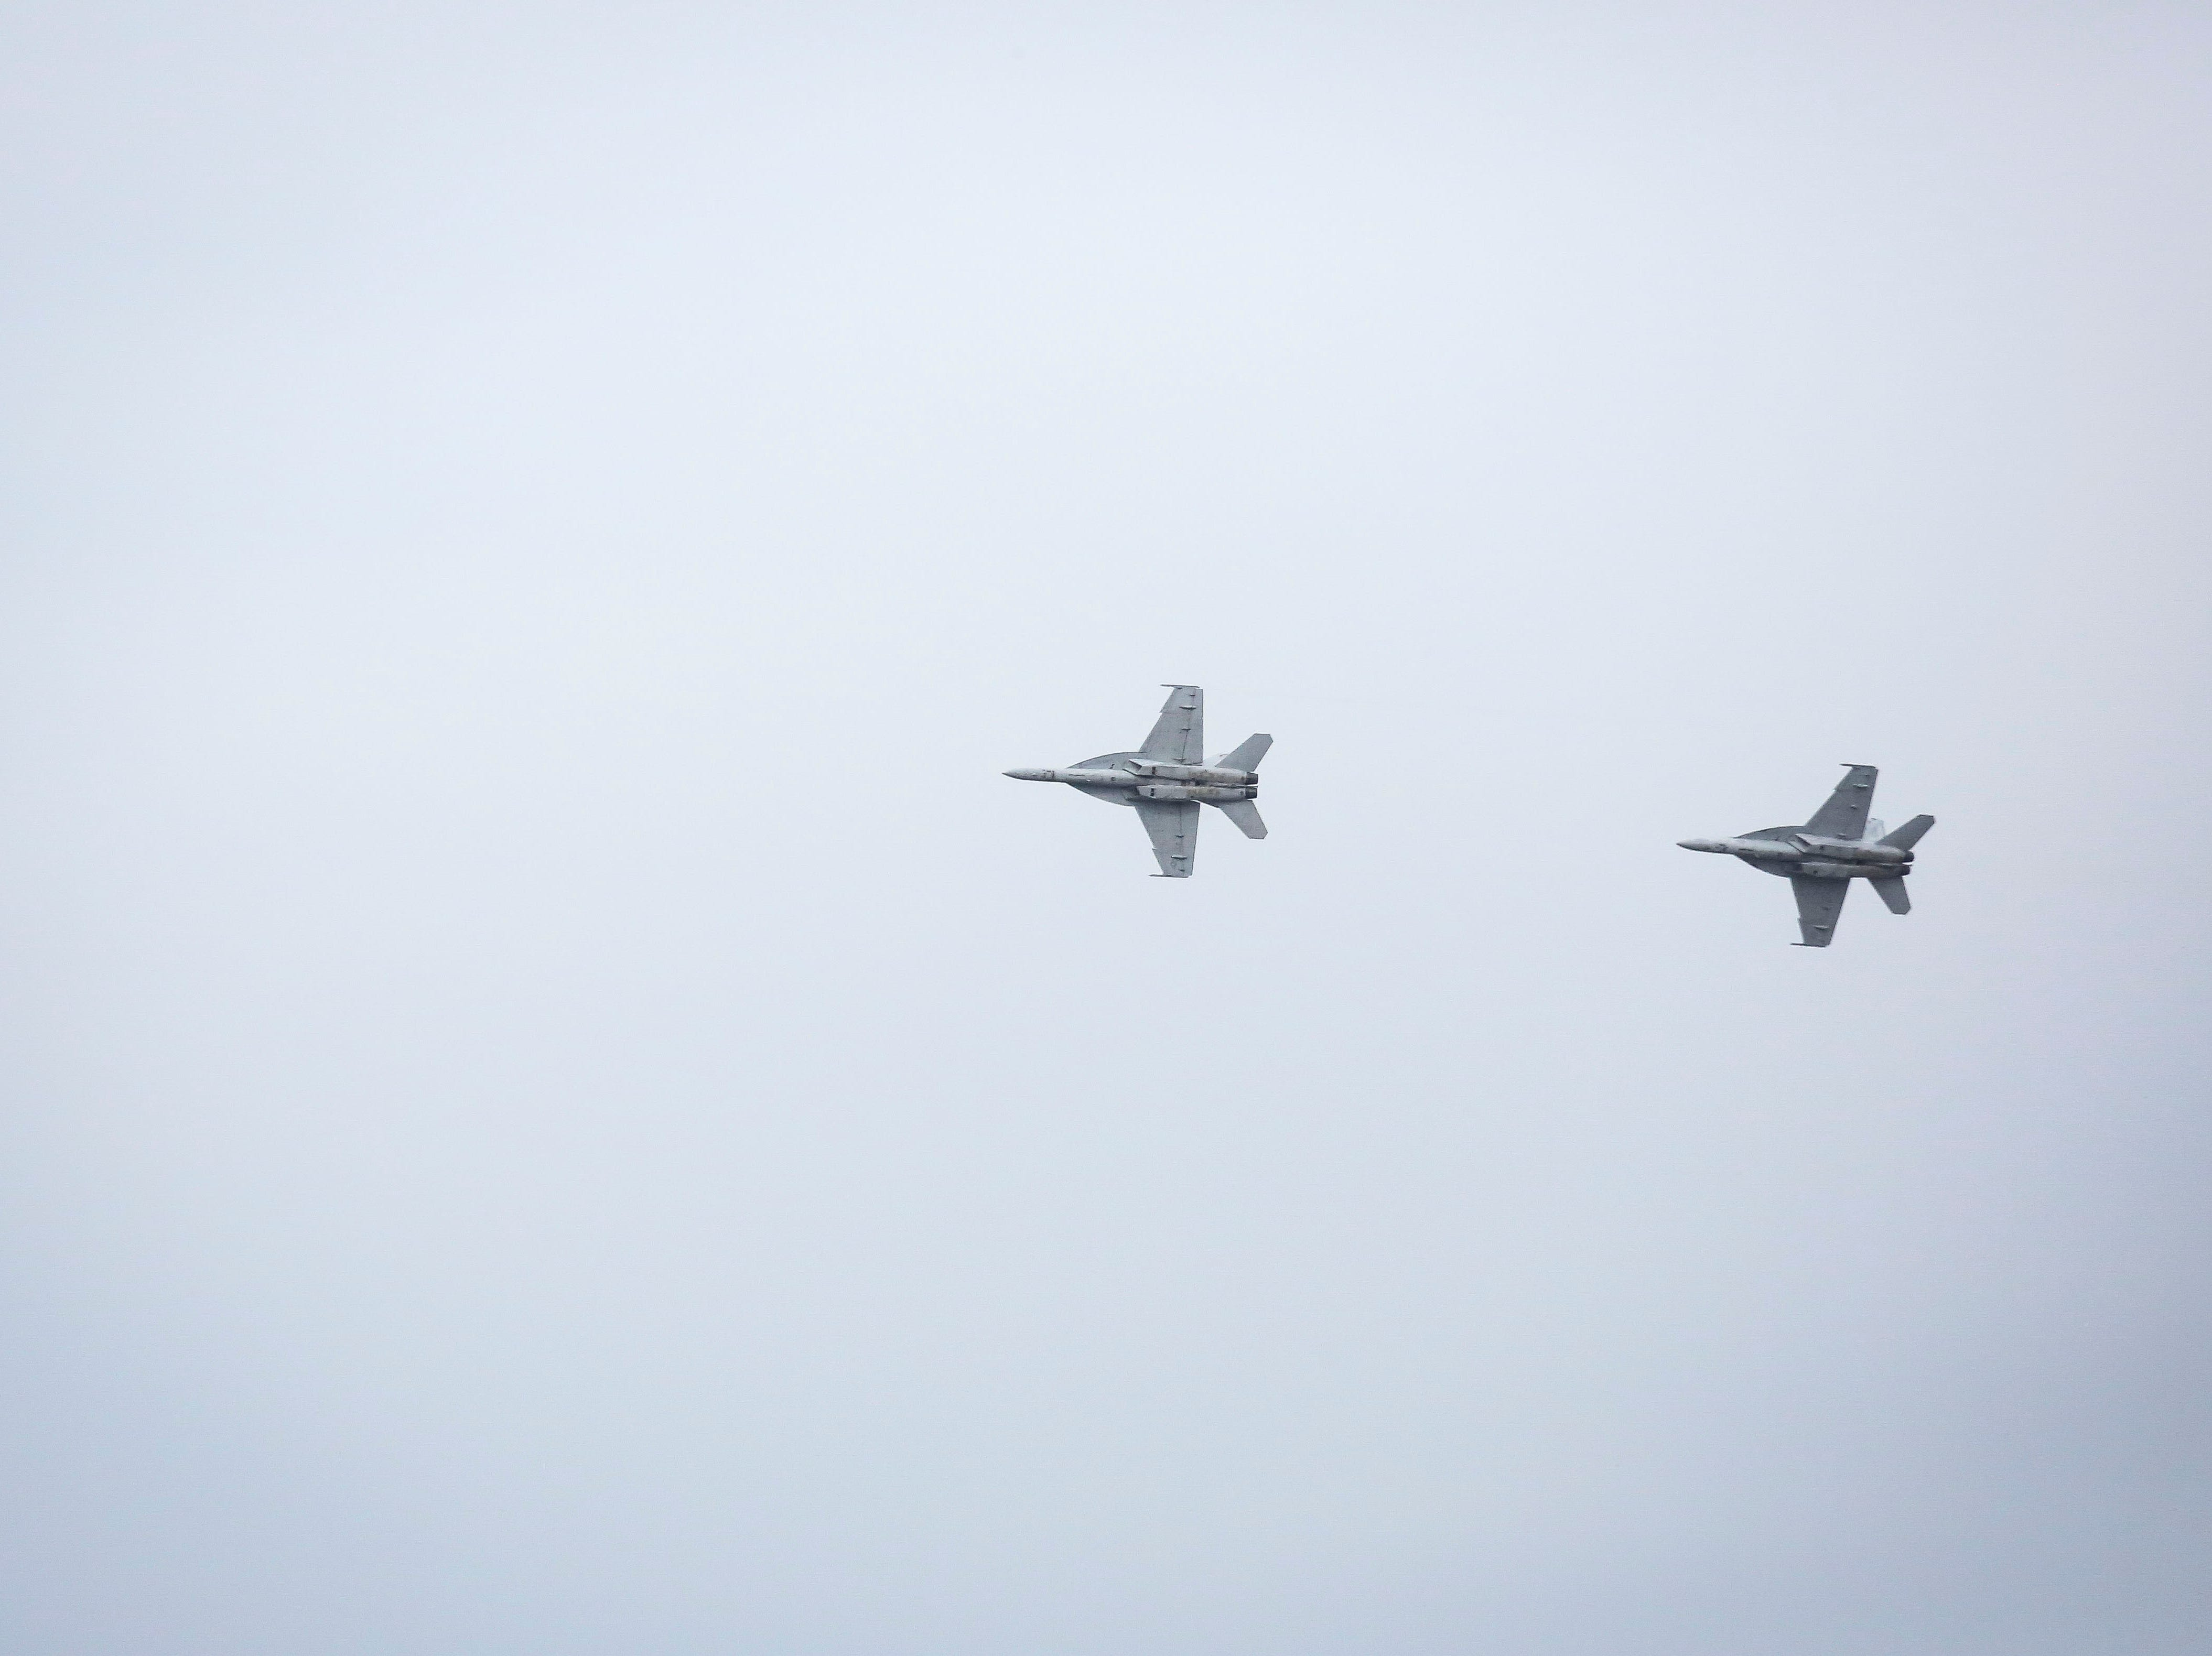 Two F/A-18 Hornets, twin-engine, supersonic combat jets, fly over the Kentucky Air National Guard base ahead of practice for Thunder Over Louisville in Louisville, Ky. on Friday, April 12, 2019.